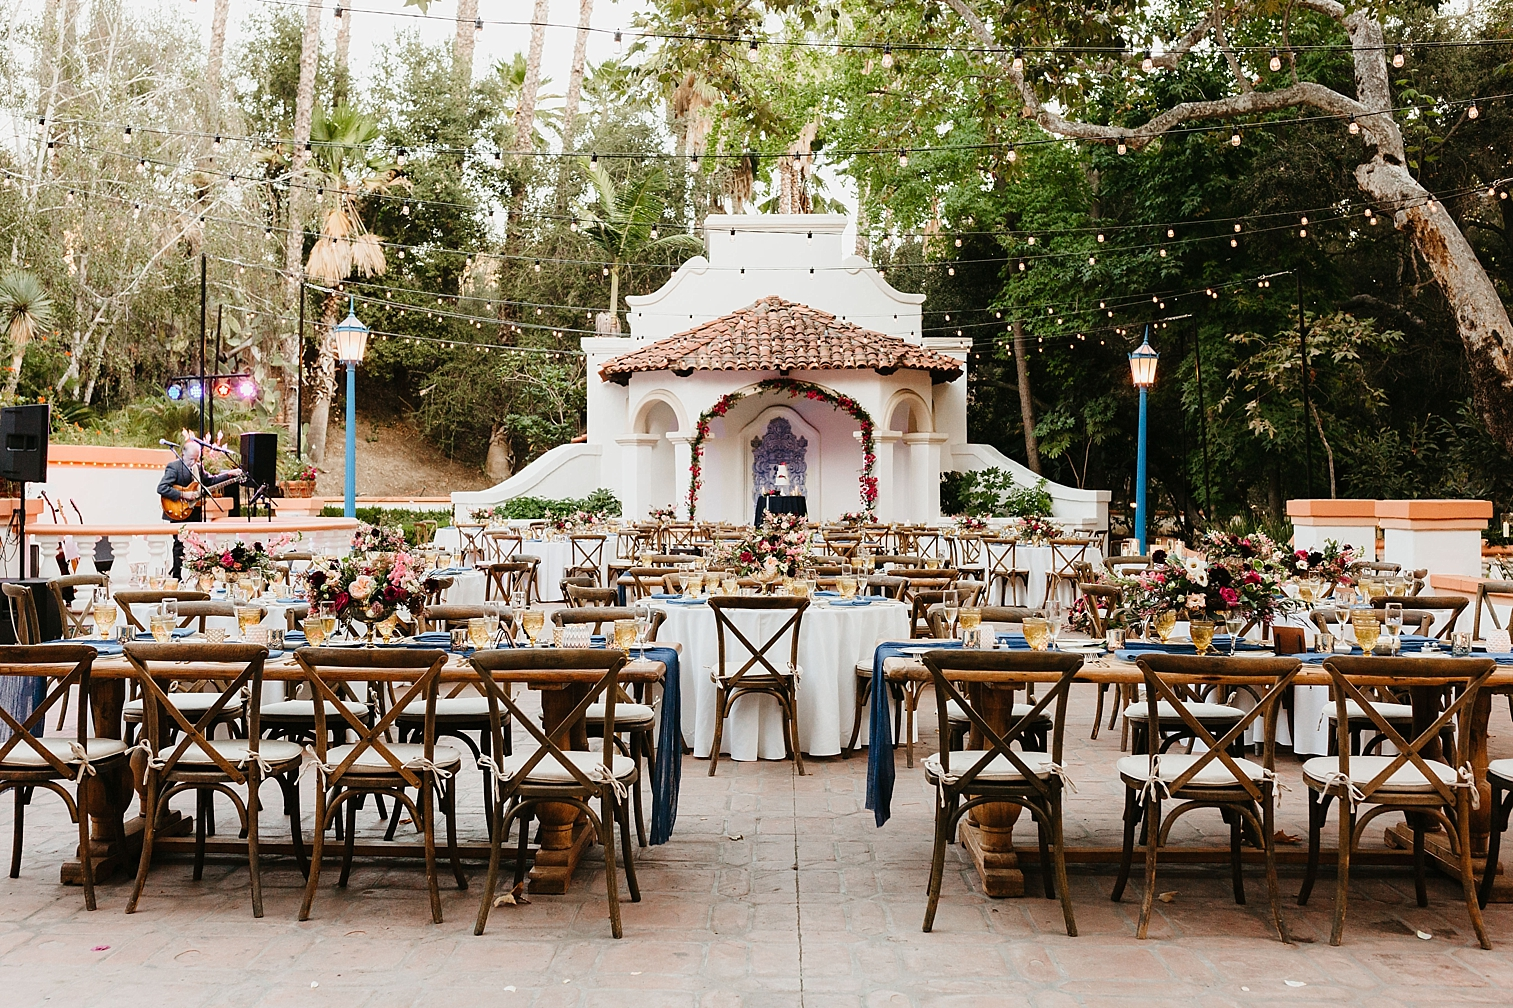 Rancho-Las-Lomas-Wedding-99.jpg